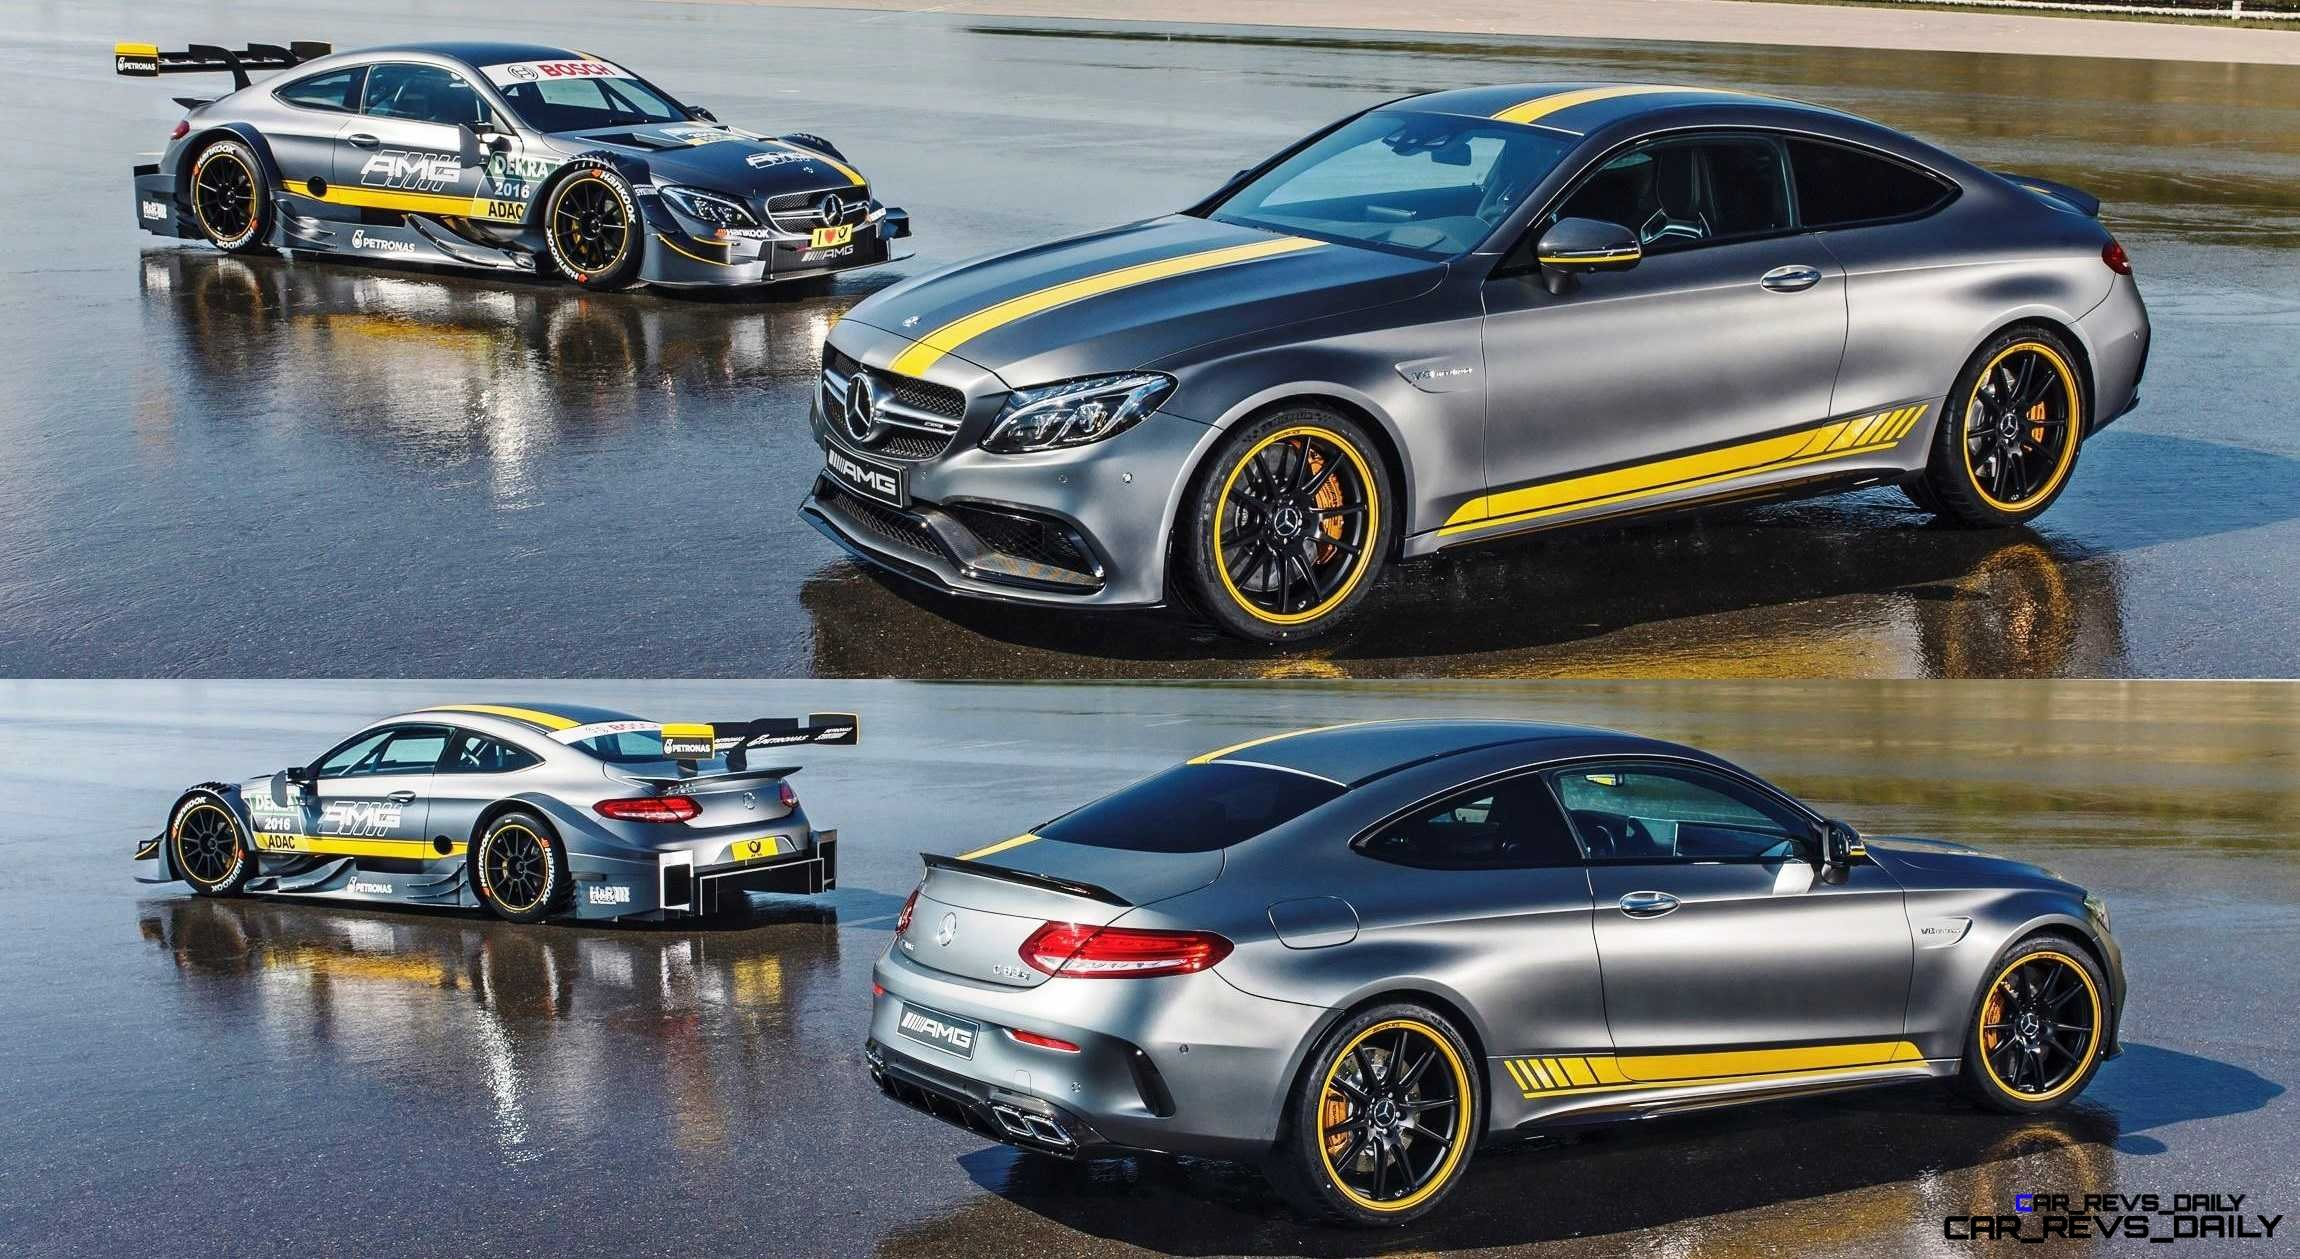 Mercedes amg c 63 s coupe edition 1 2016 wallpapers and hd images - 2017 Mercedes Amg C63 Coup Edition 1 2016